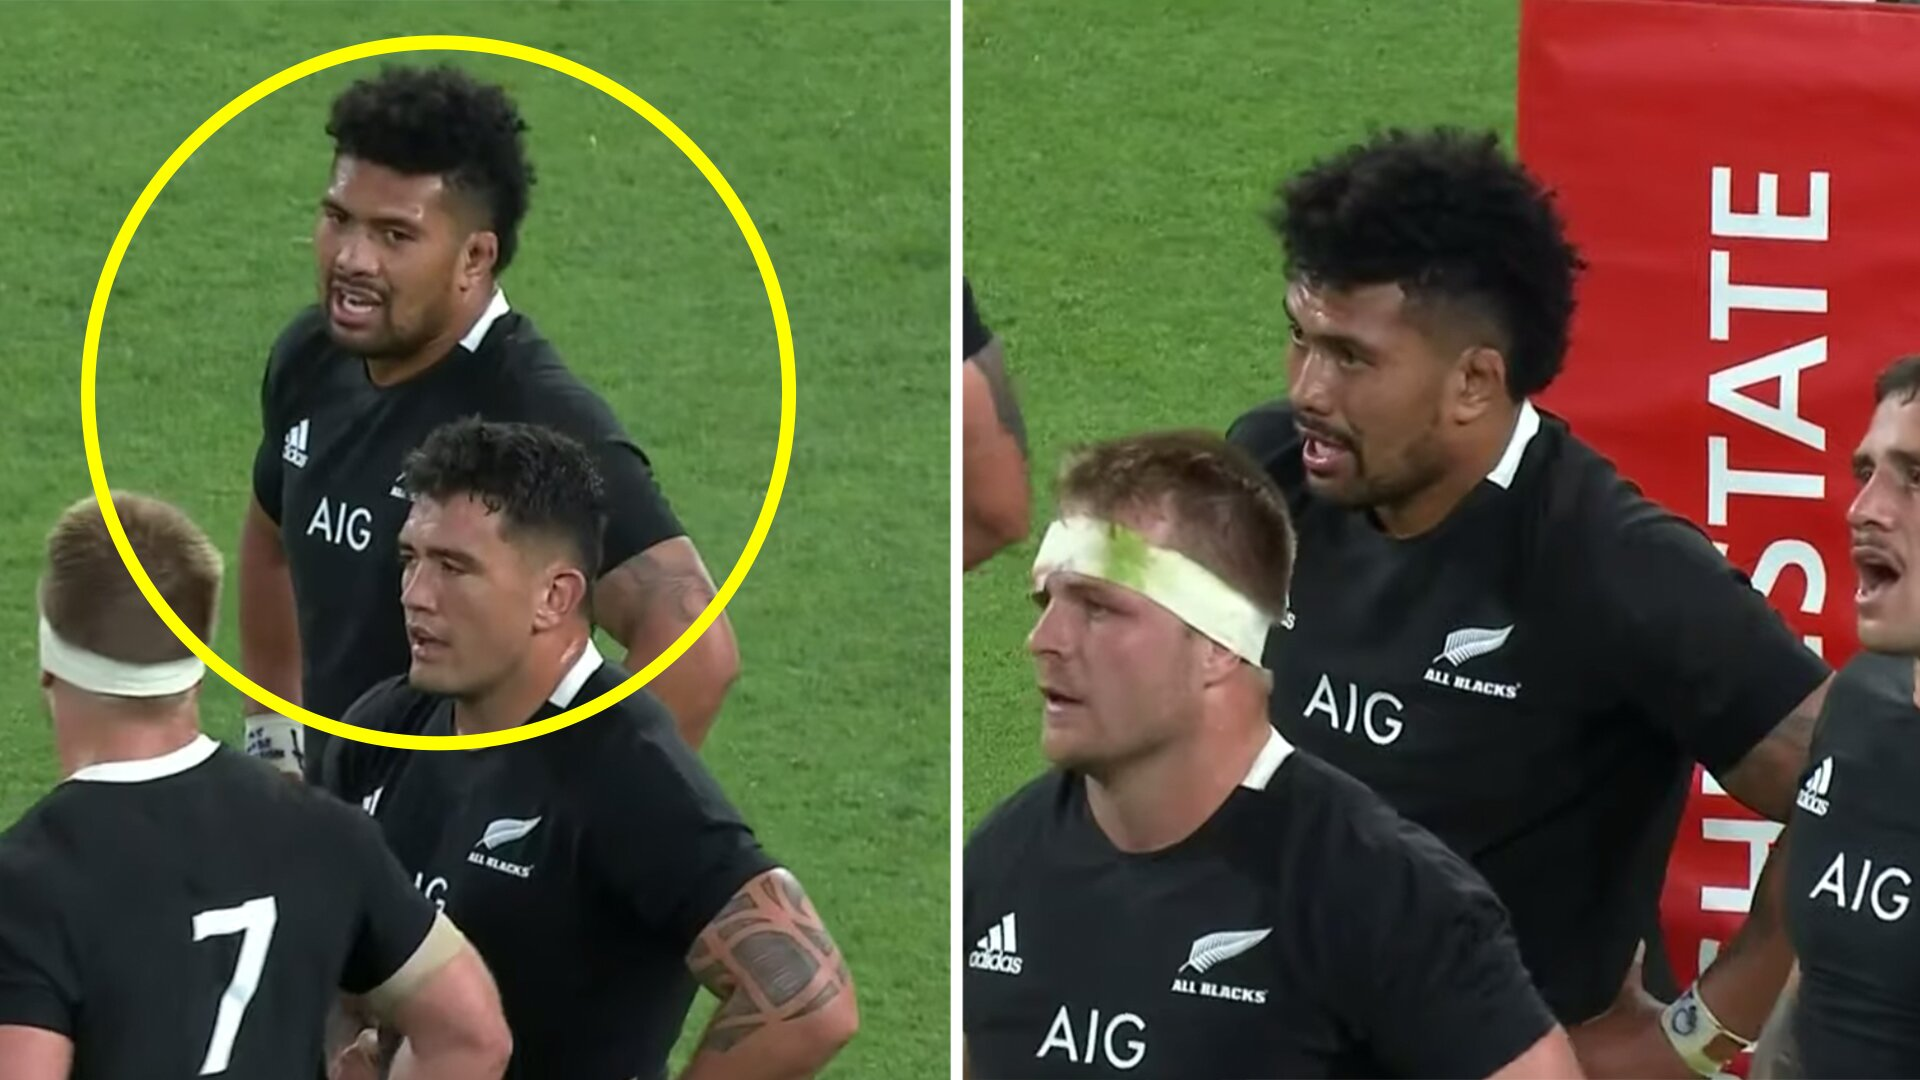 Outrage as footage shows Ardie Savea consistently not wearing a gumshield for All Blacks